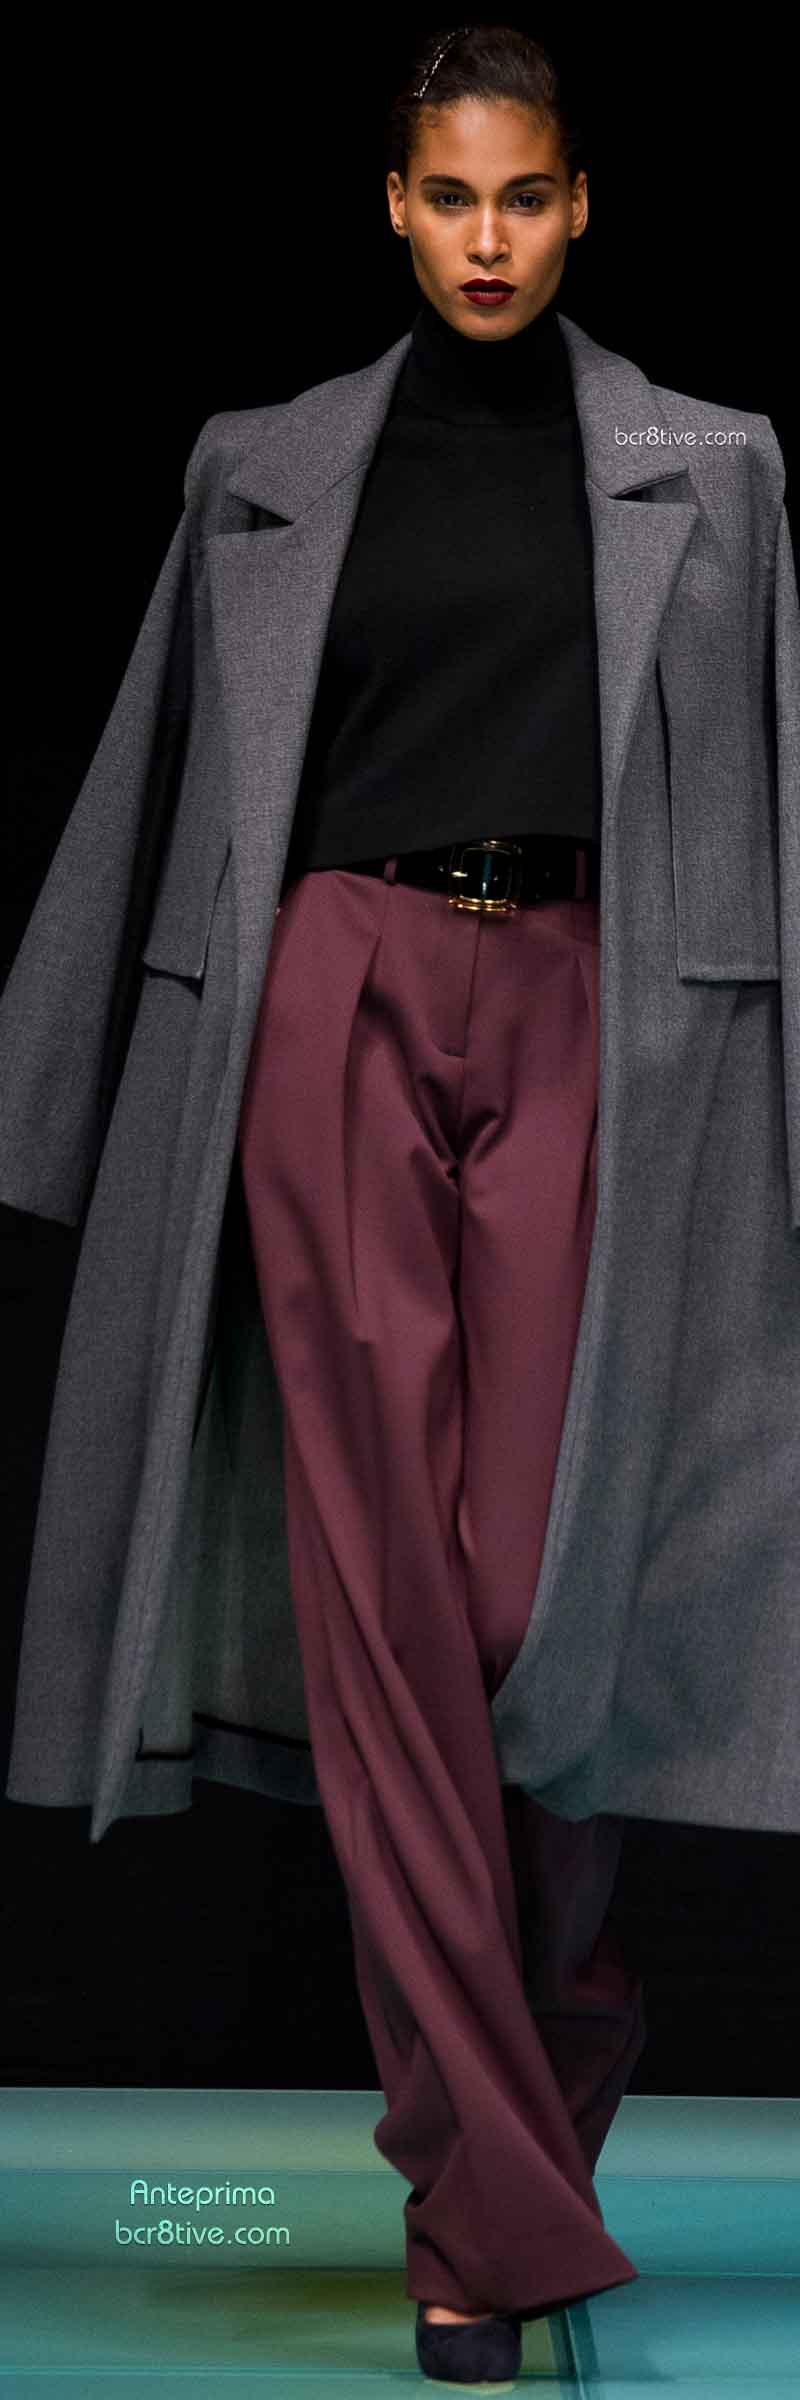 Fall 2014 Menswear Inspired Fashion - Anteprima